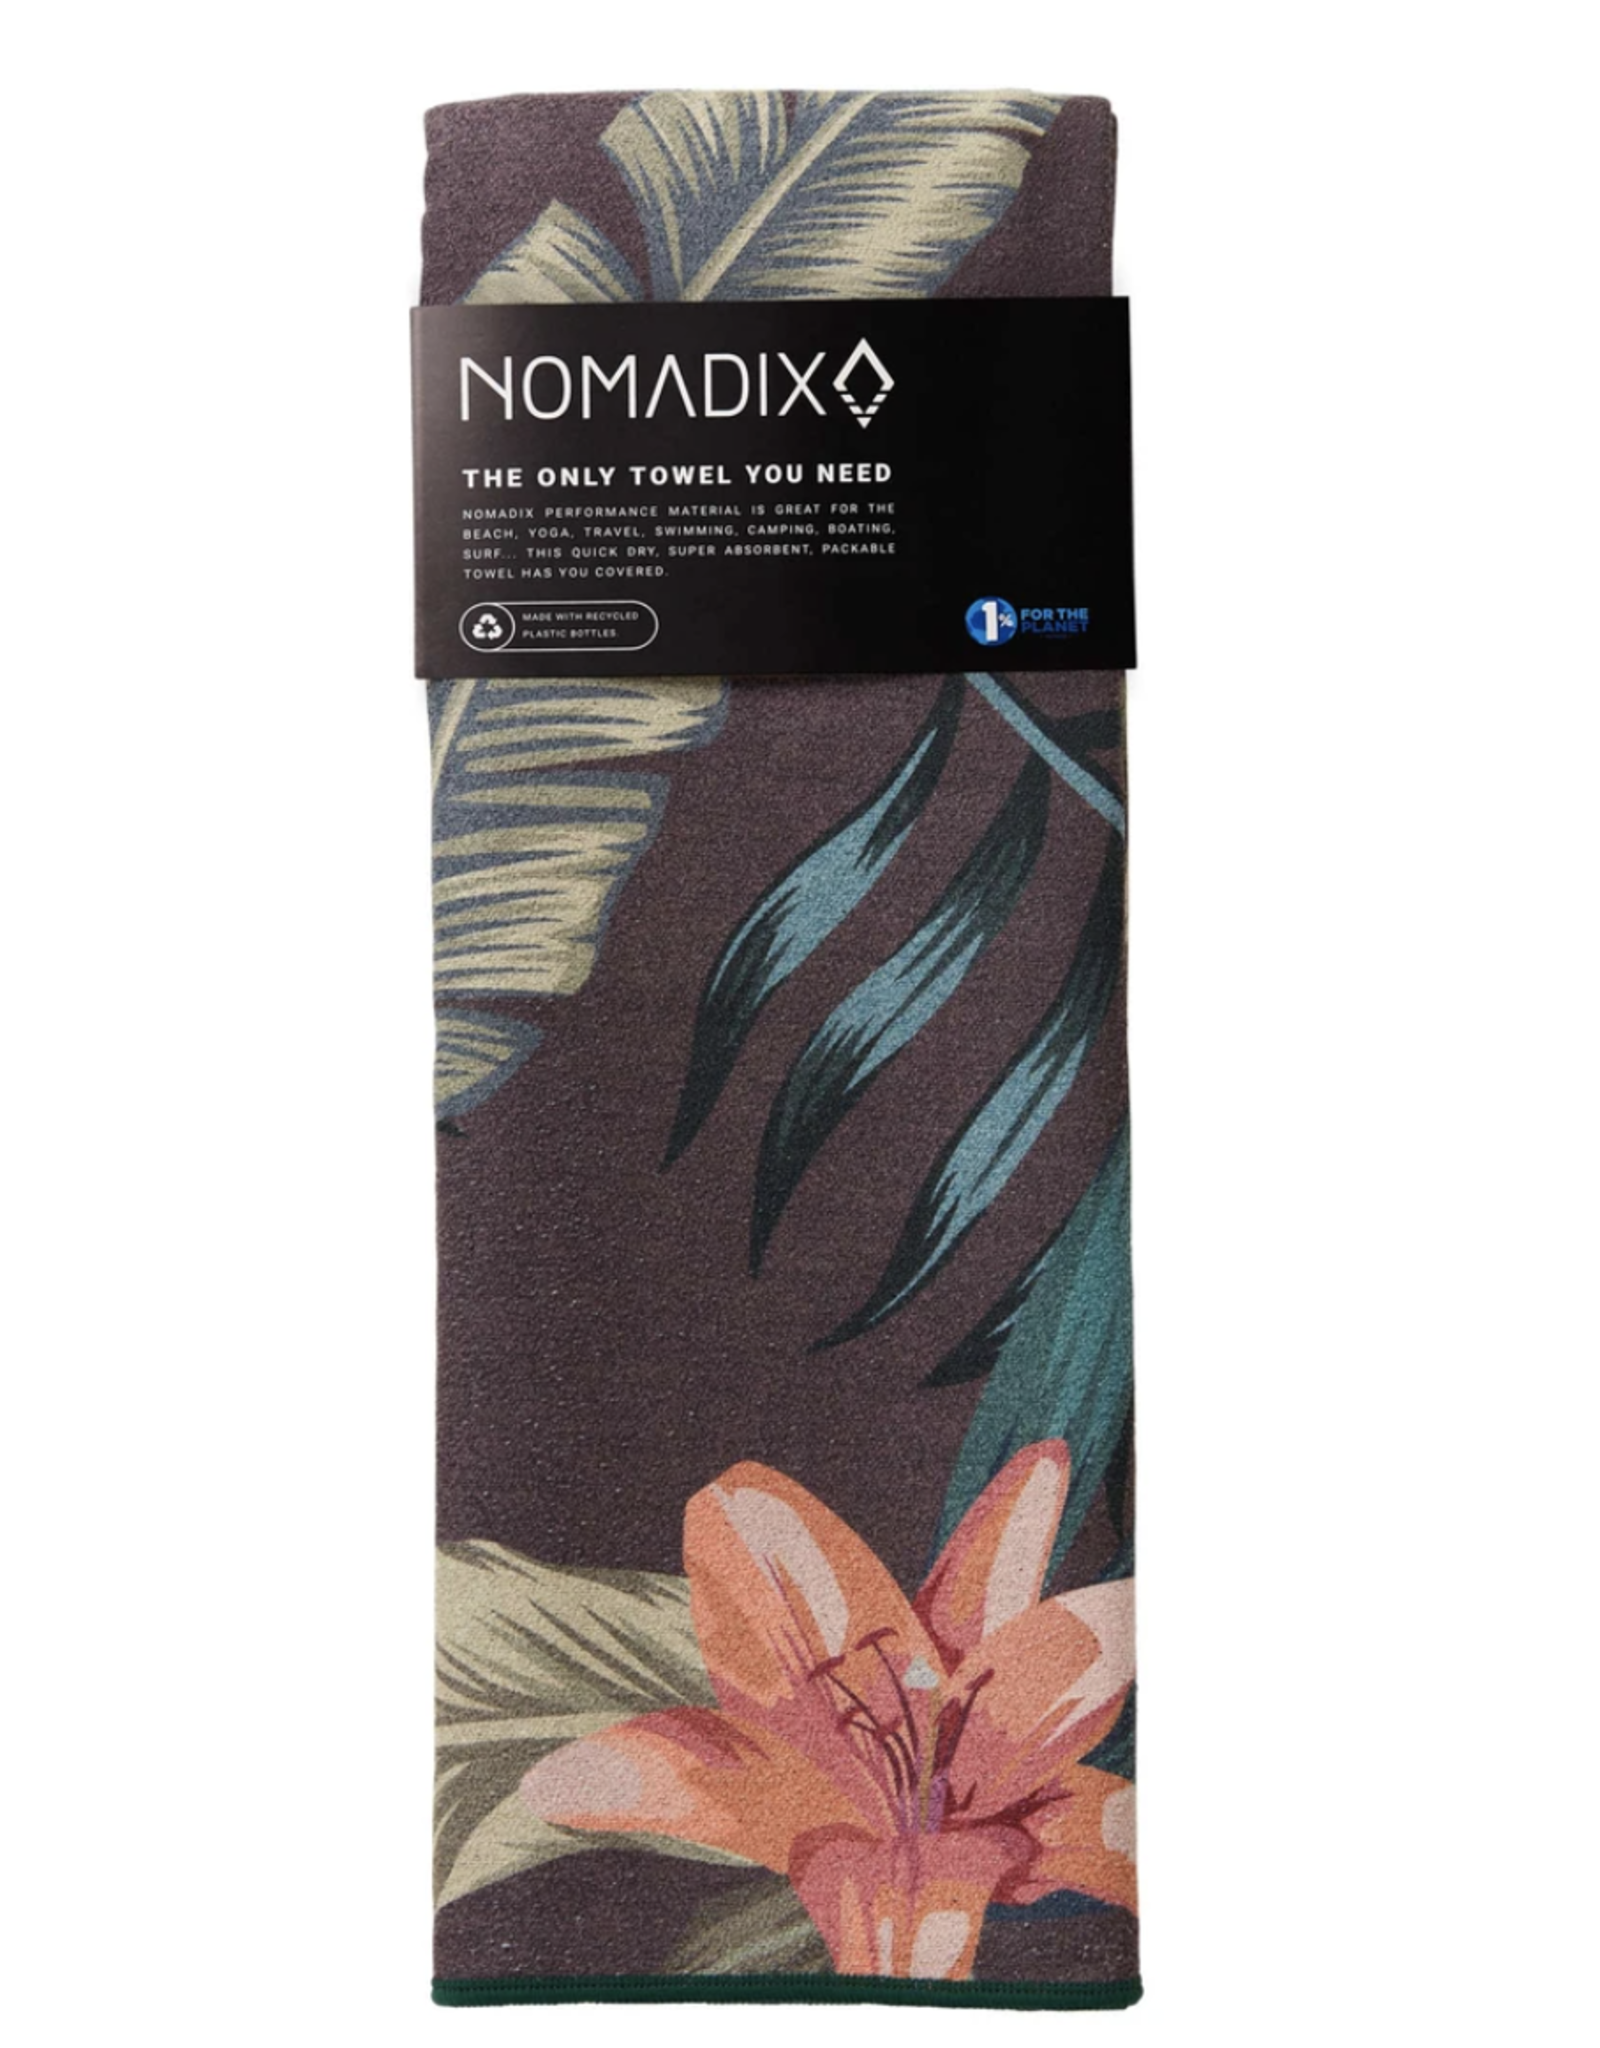 Nomadix The only towel you need -3